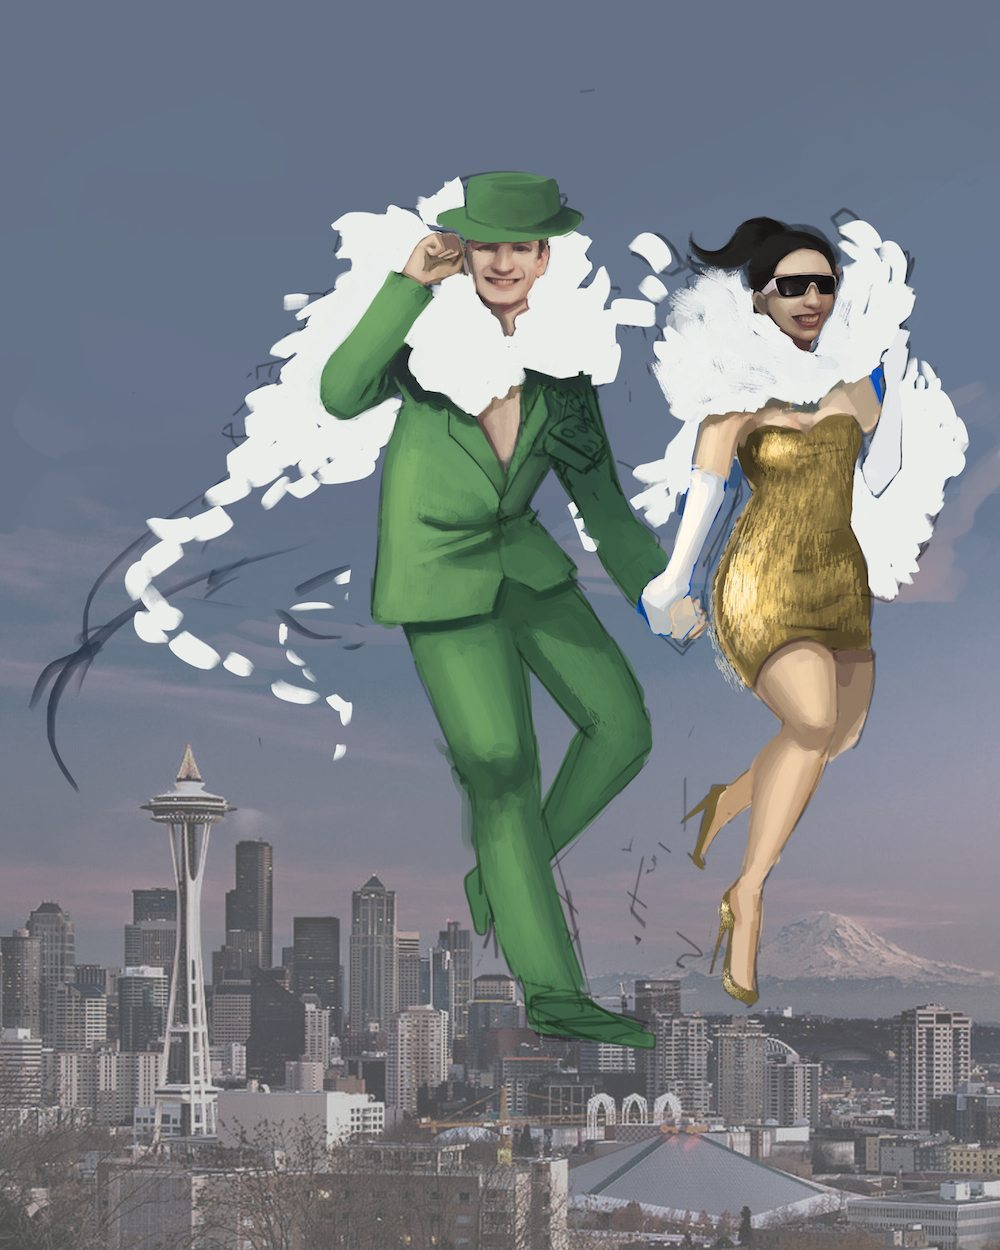 WIP Draft of Simoney and Cashley over Seattle by Andy Lamarca